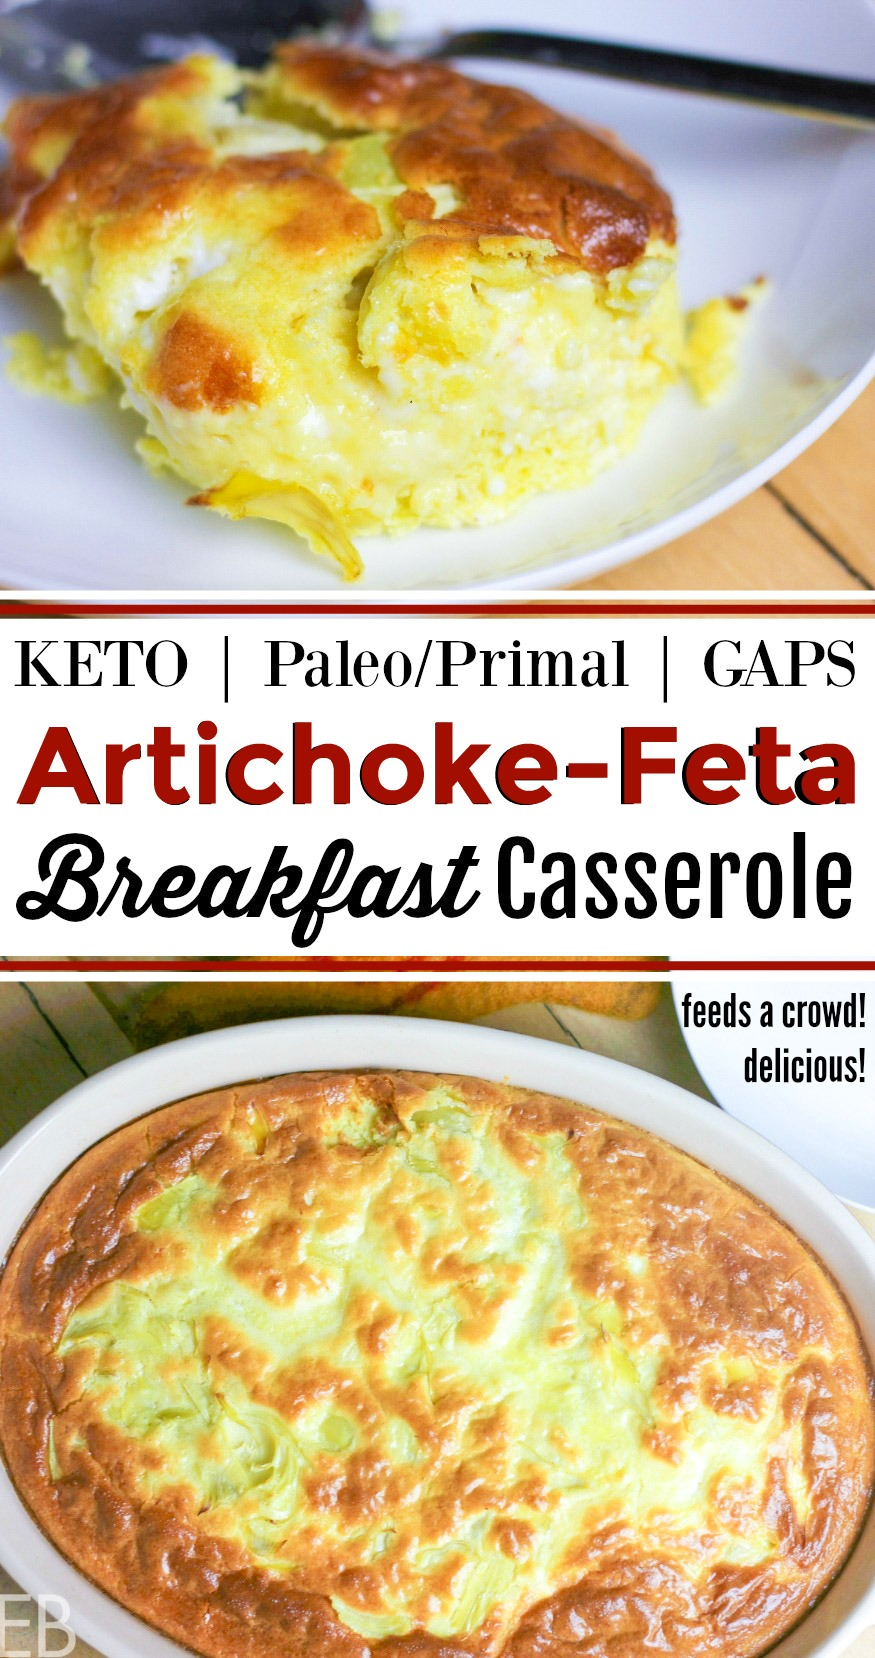 Artichoke Feta Breakfast Casserole is Keto, Paleo/Primal and GAPS. It's rich and super satisfying. You'll love the quick prep and happy eaters! Make it for a crowd; it's a nice big recipe with leftovers. #keto #primal #gapsdiet #breakfast #casserole